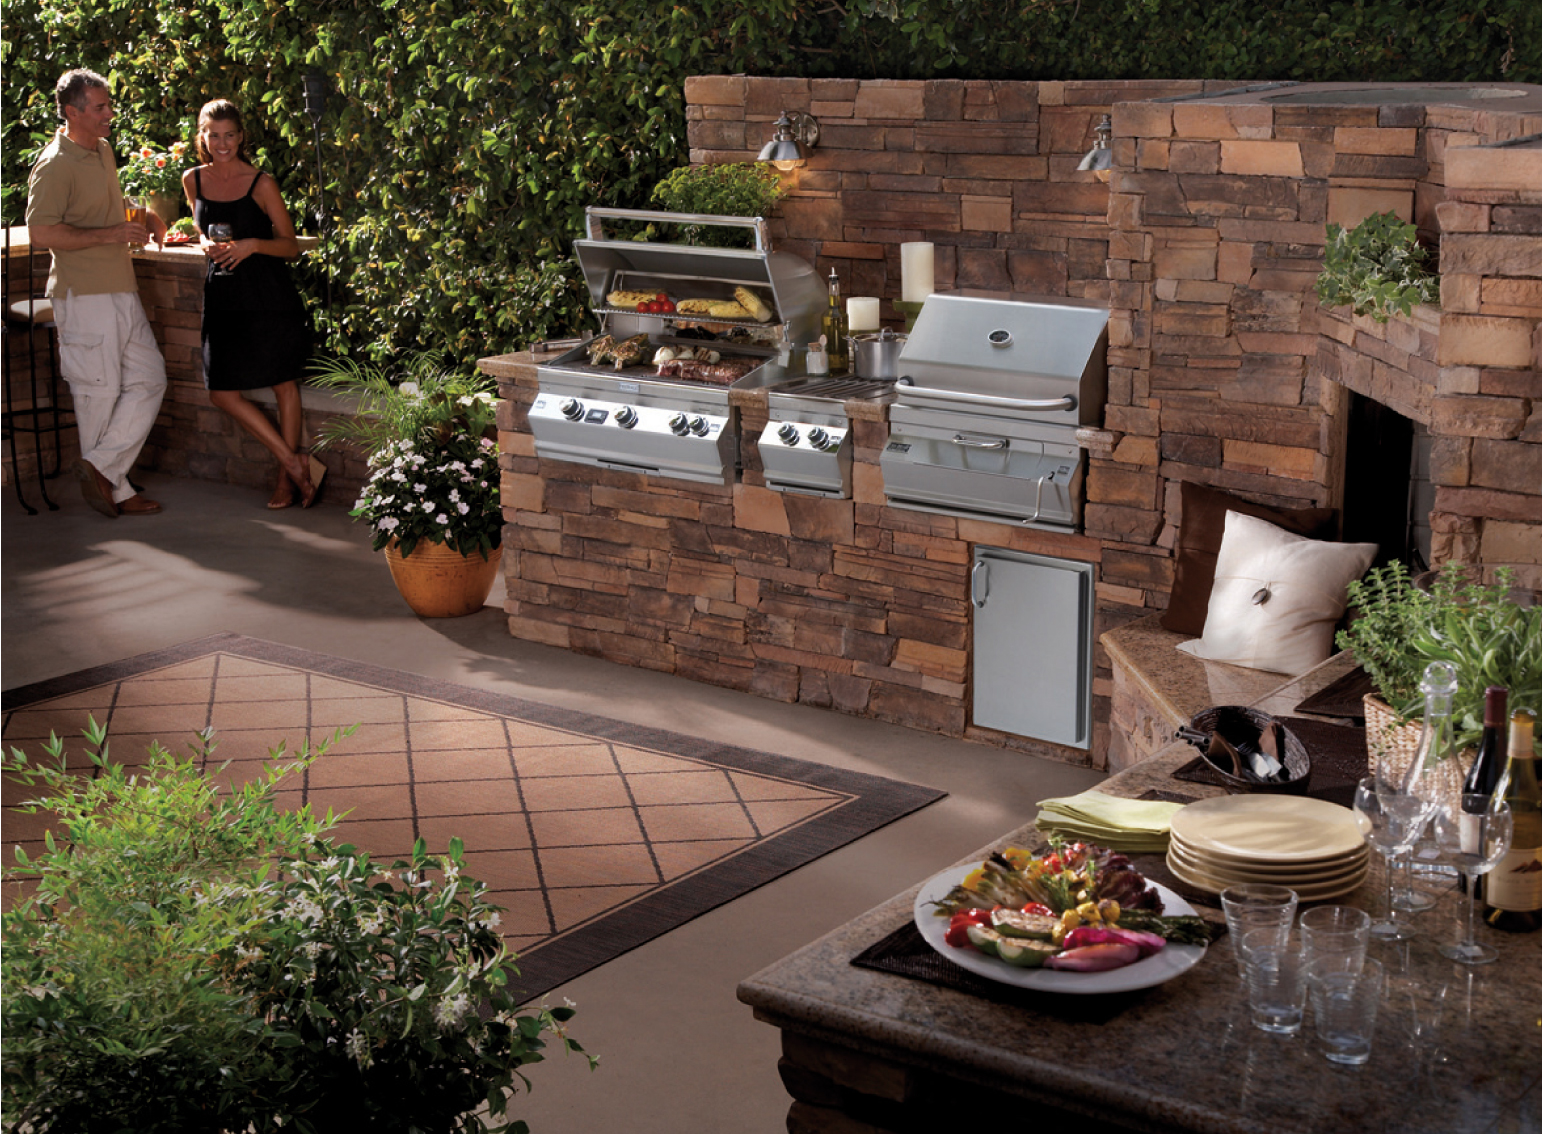 Ultimate Outdoor Kitchens: Cook, Dine, Entertain Al Fresco ... on Exterior Grill Design id=49131